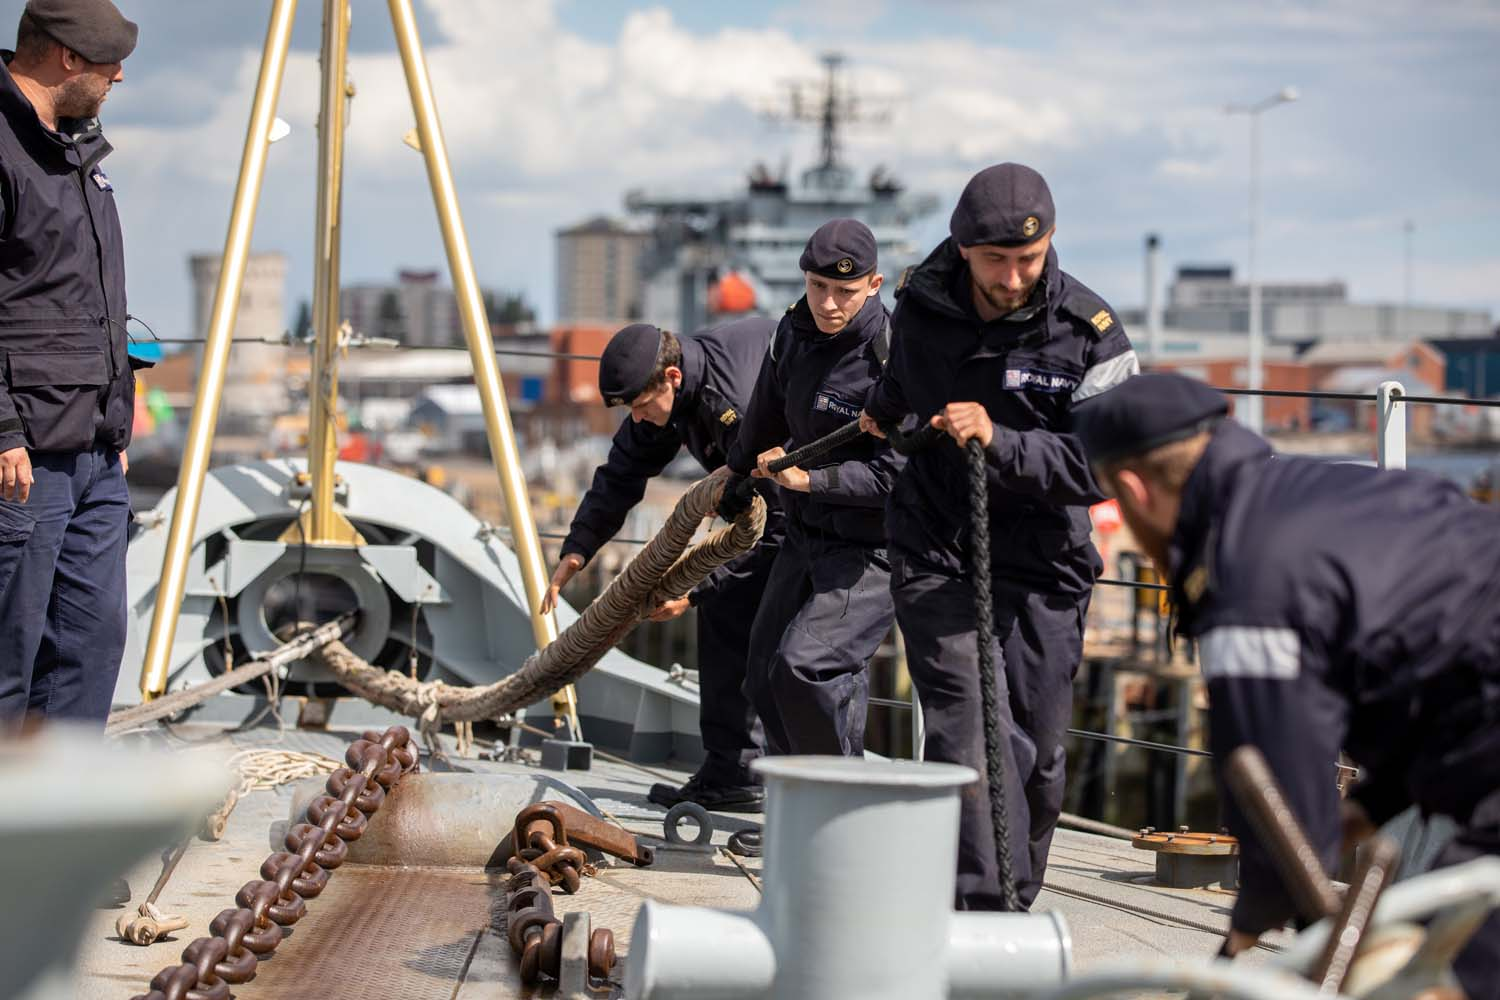 Royal Navy HMS Lancaster on Weapons Trials After Two-Year Refit